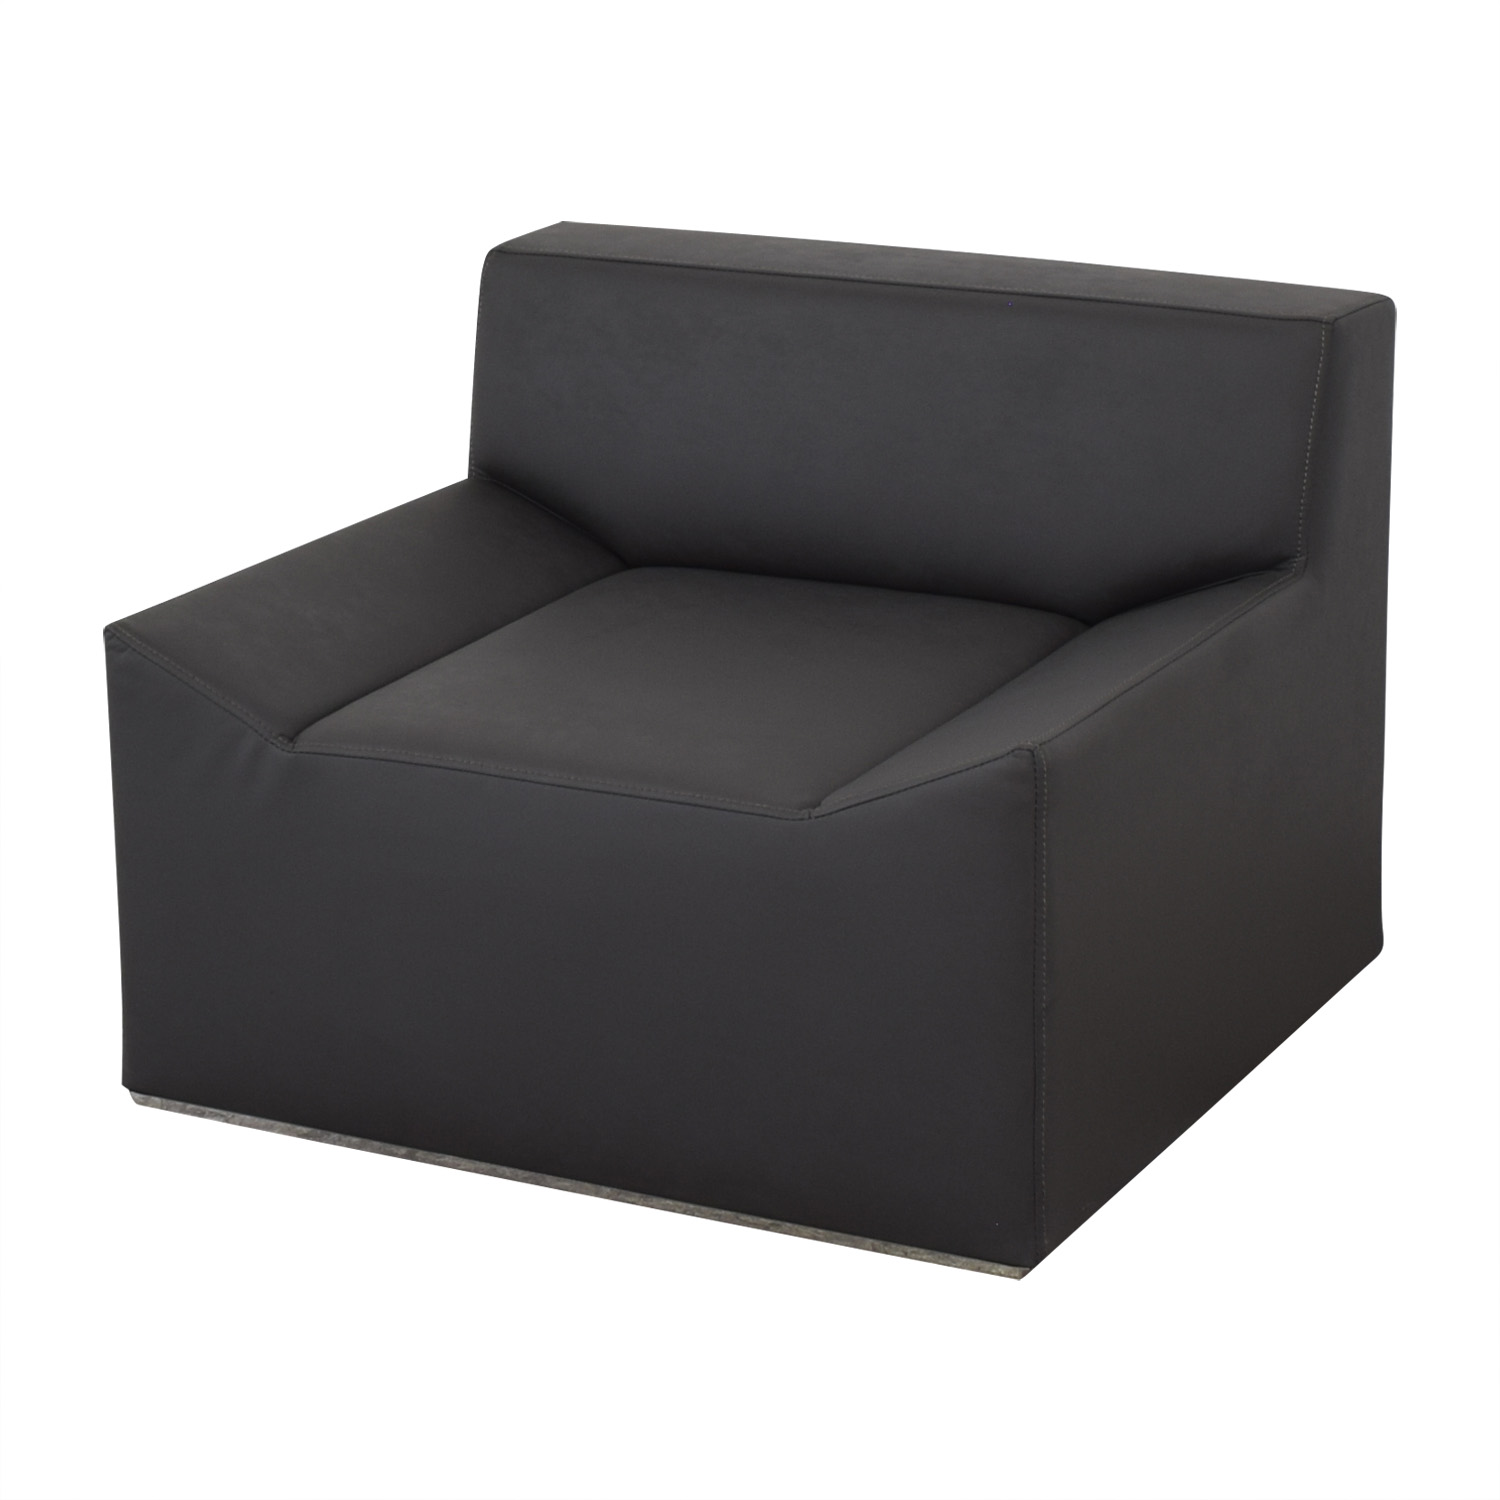 Blu Dot Blu Dot Couchoid Lounge Chair coupon